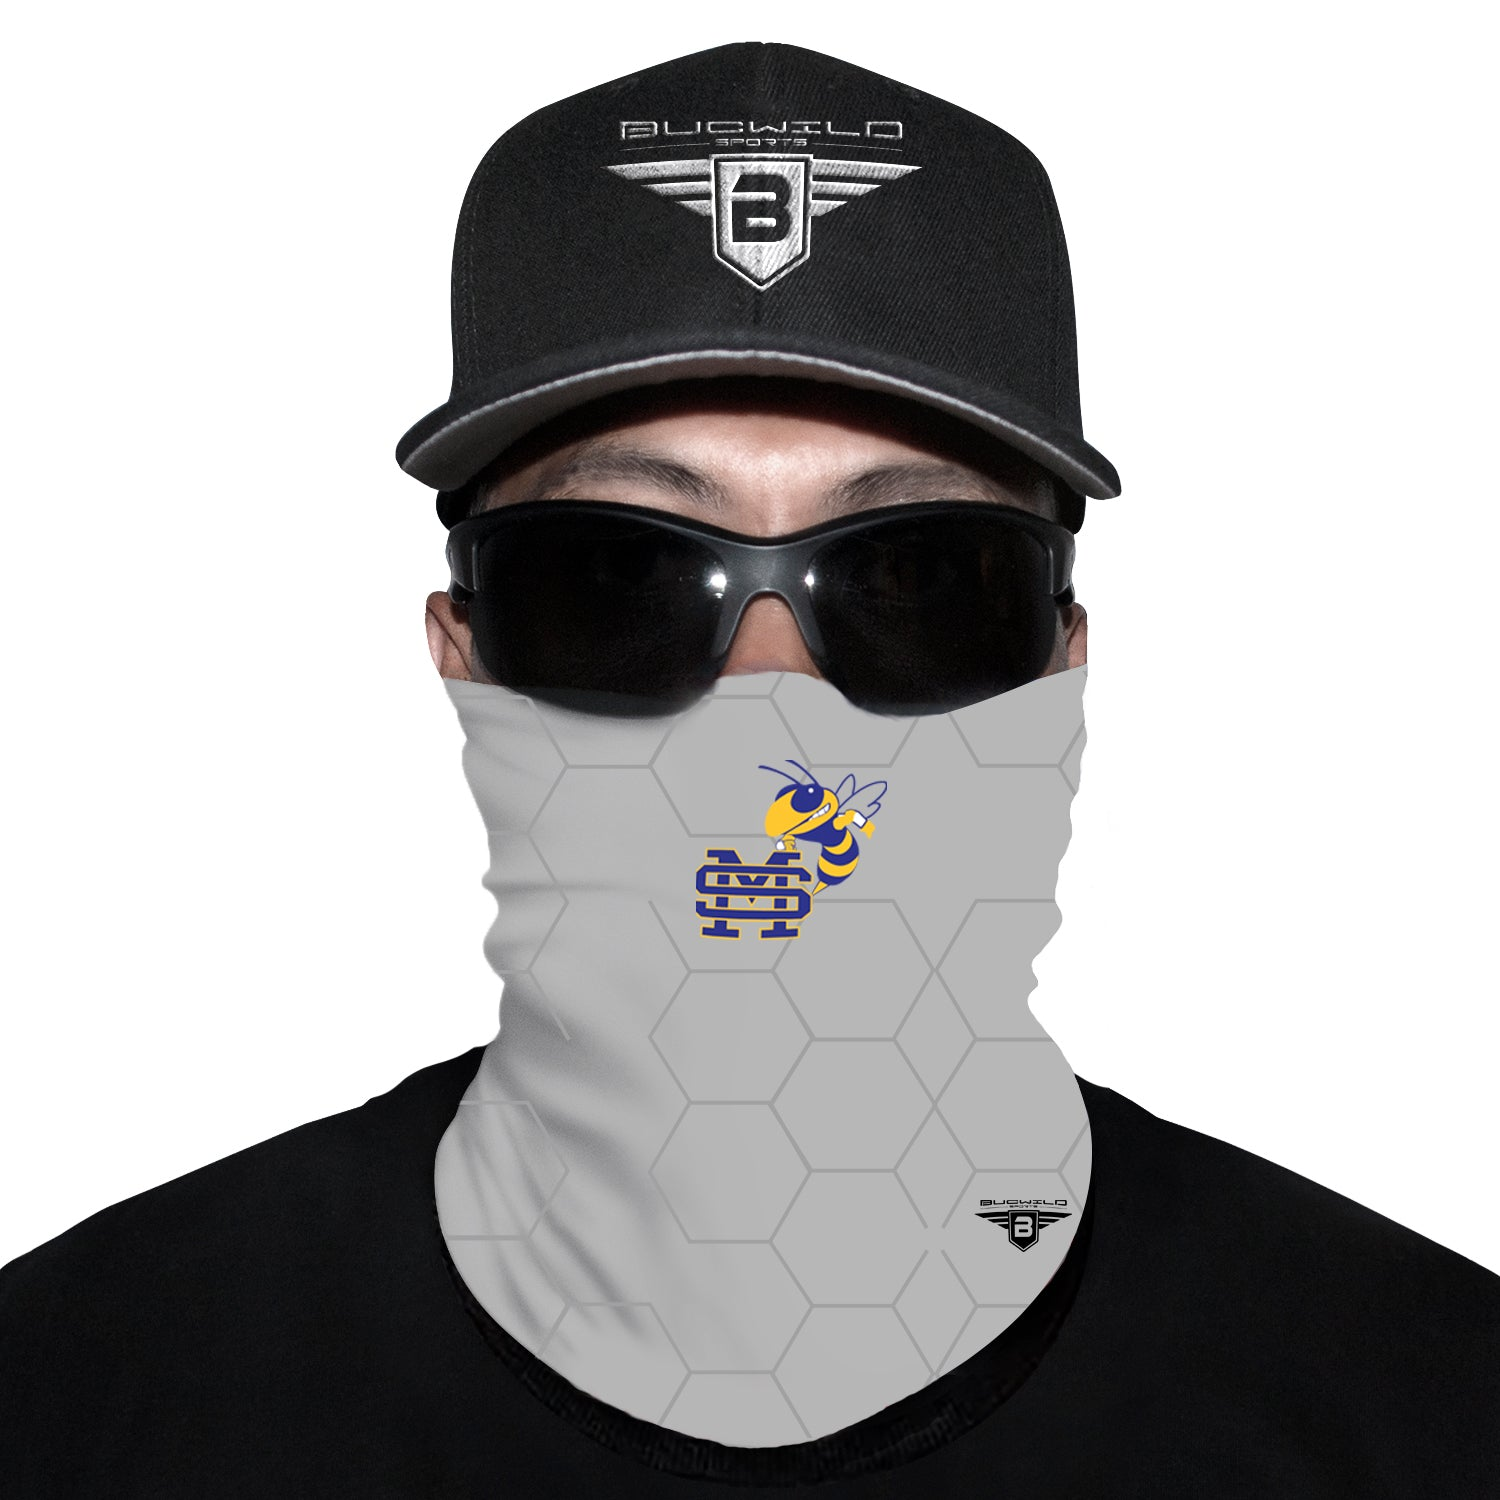 St. Martin Yellow Jackets Mississippi Neck Gaiter Face Mask